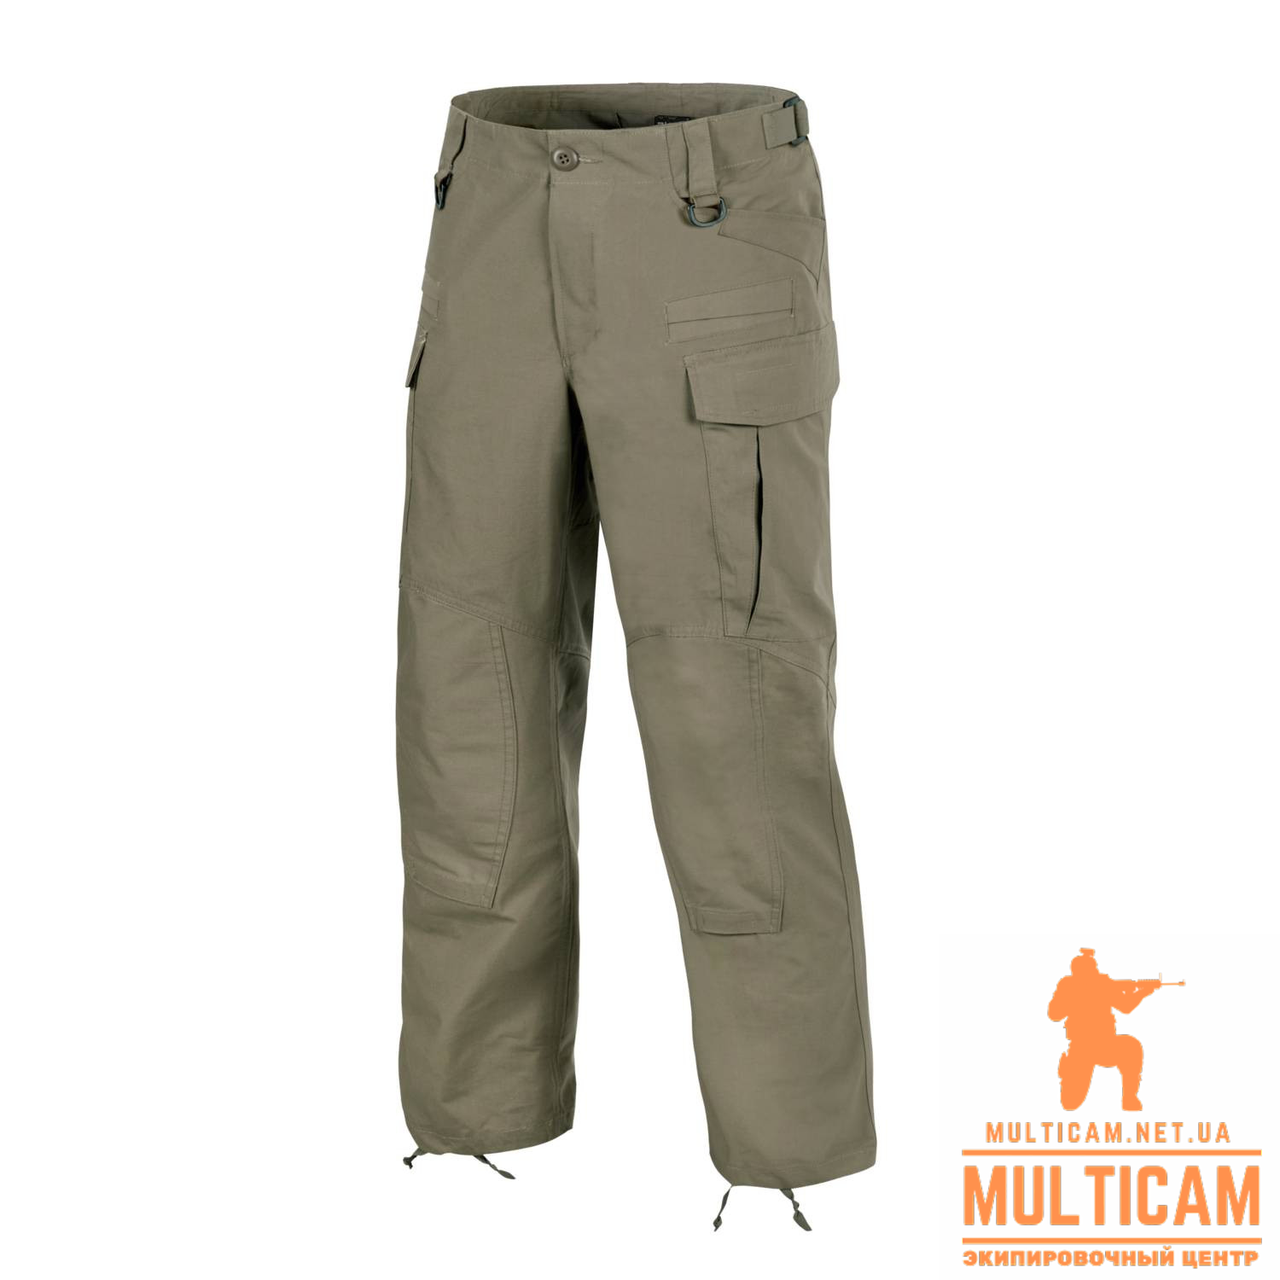 Брюки Helikon-Tex® SFU NEXT Pants® - PolyCotton Ripstop - Adaptive Green